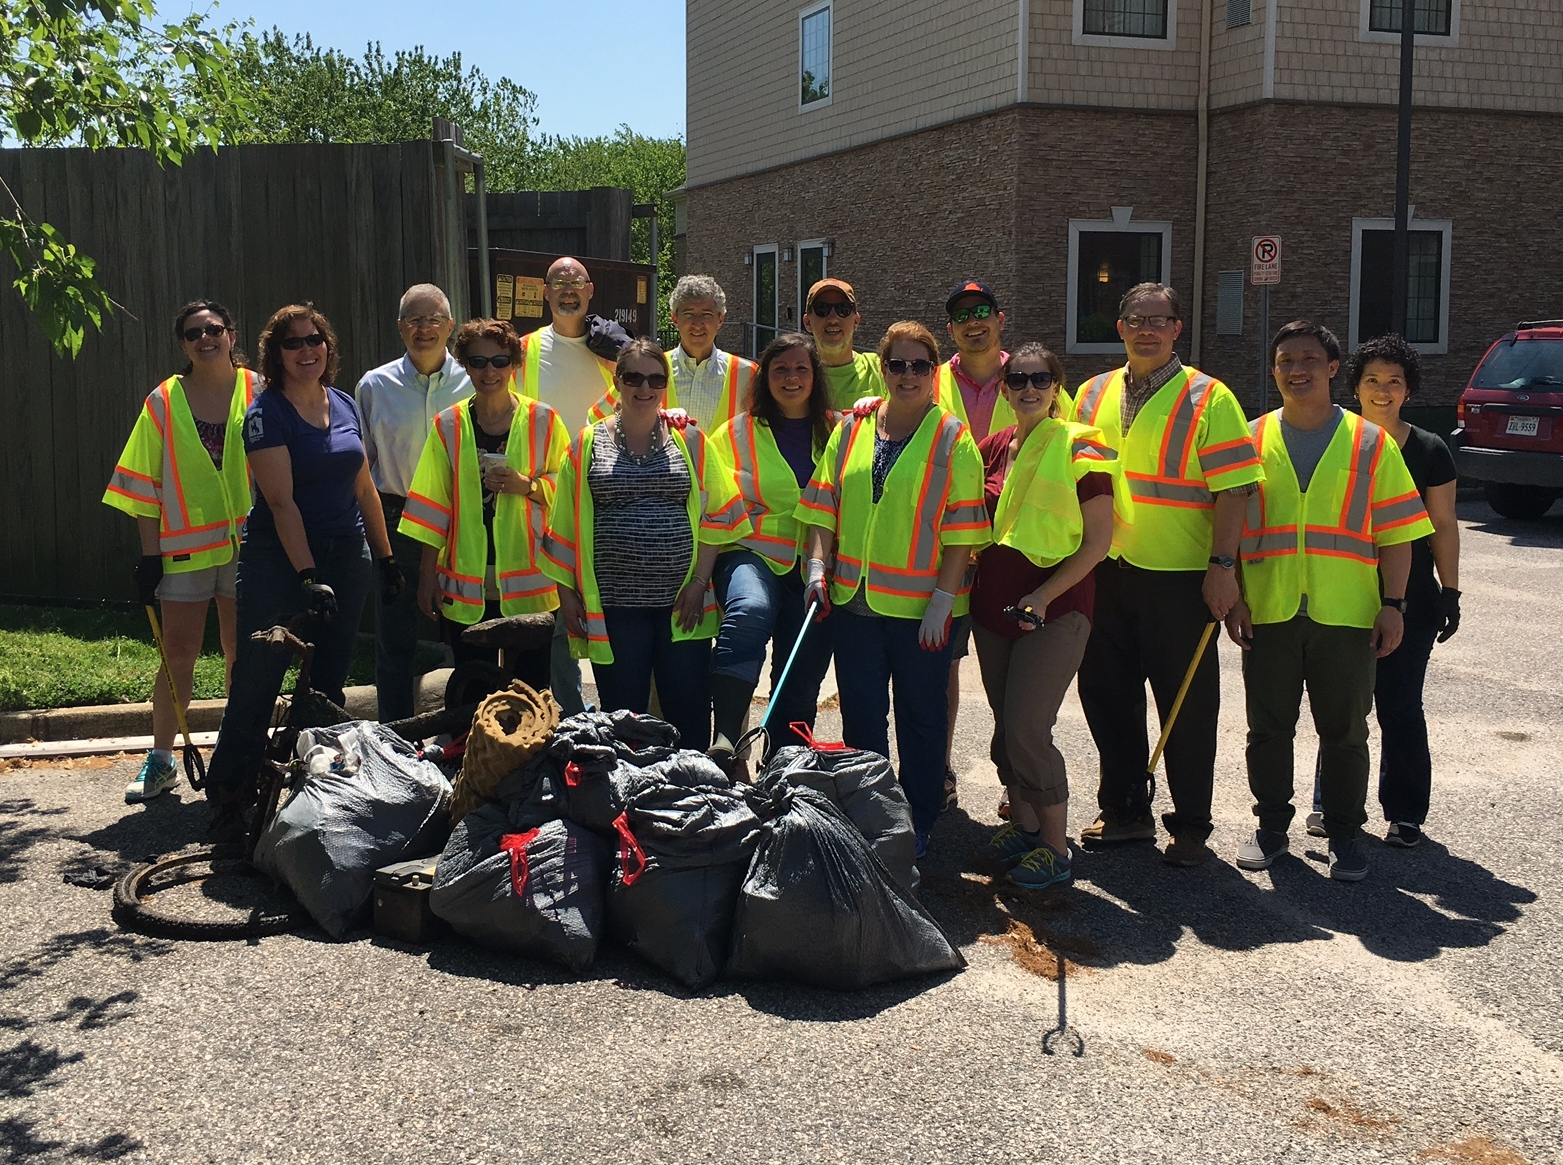 Clean up activities netted seven bags of garbage and one bike.